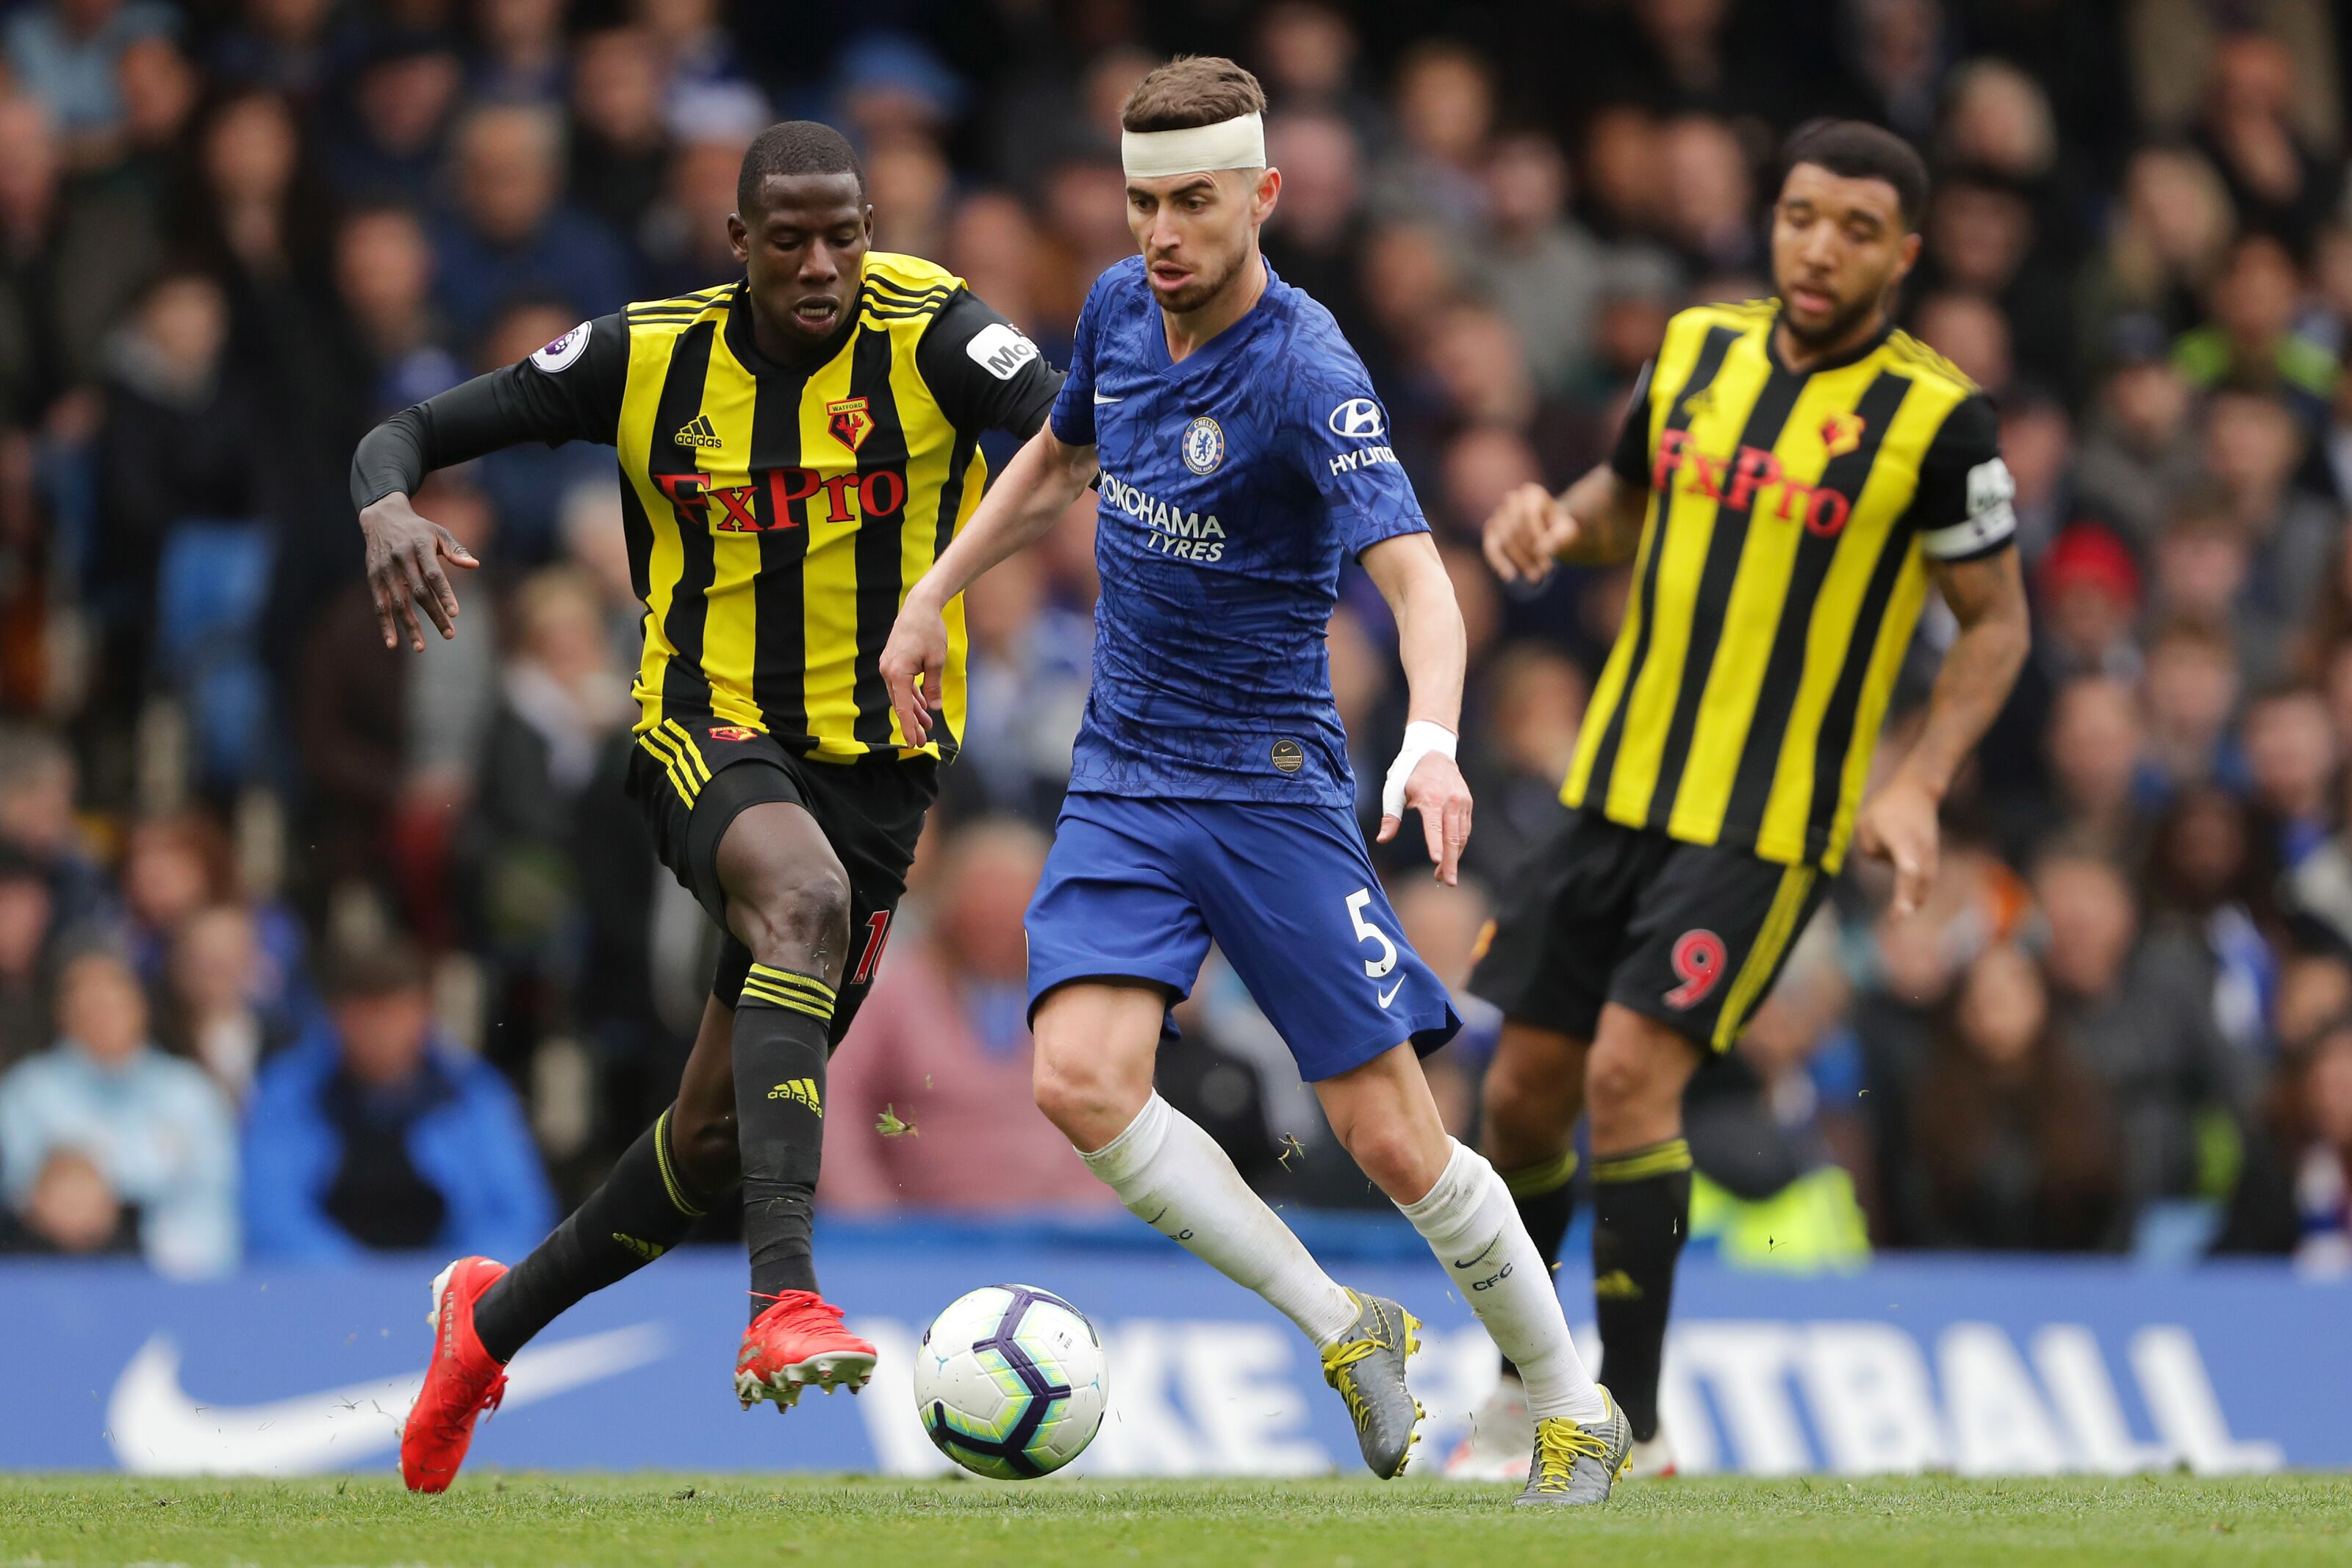 Chelsea: Is this Sarriball? Sarri's leftover fans now playing Calvinball